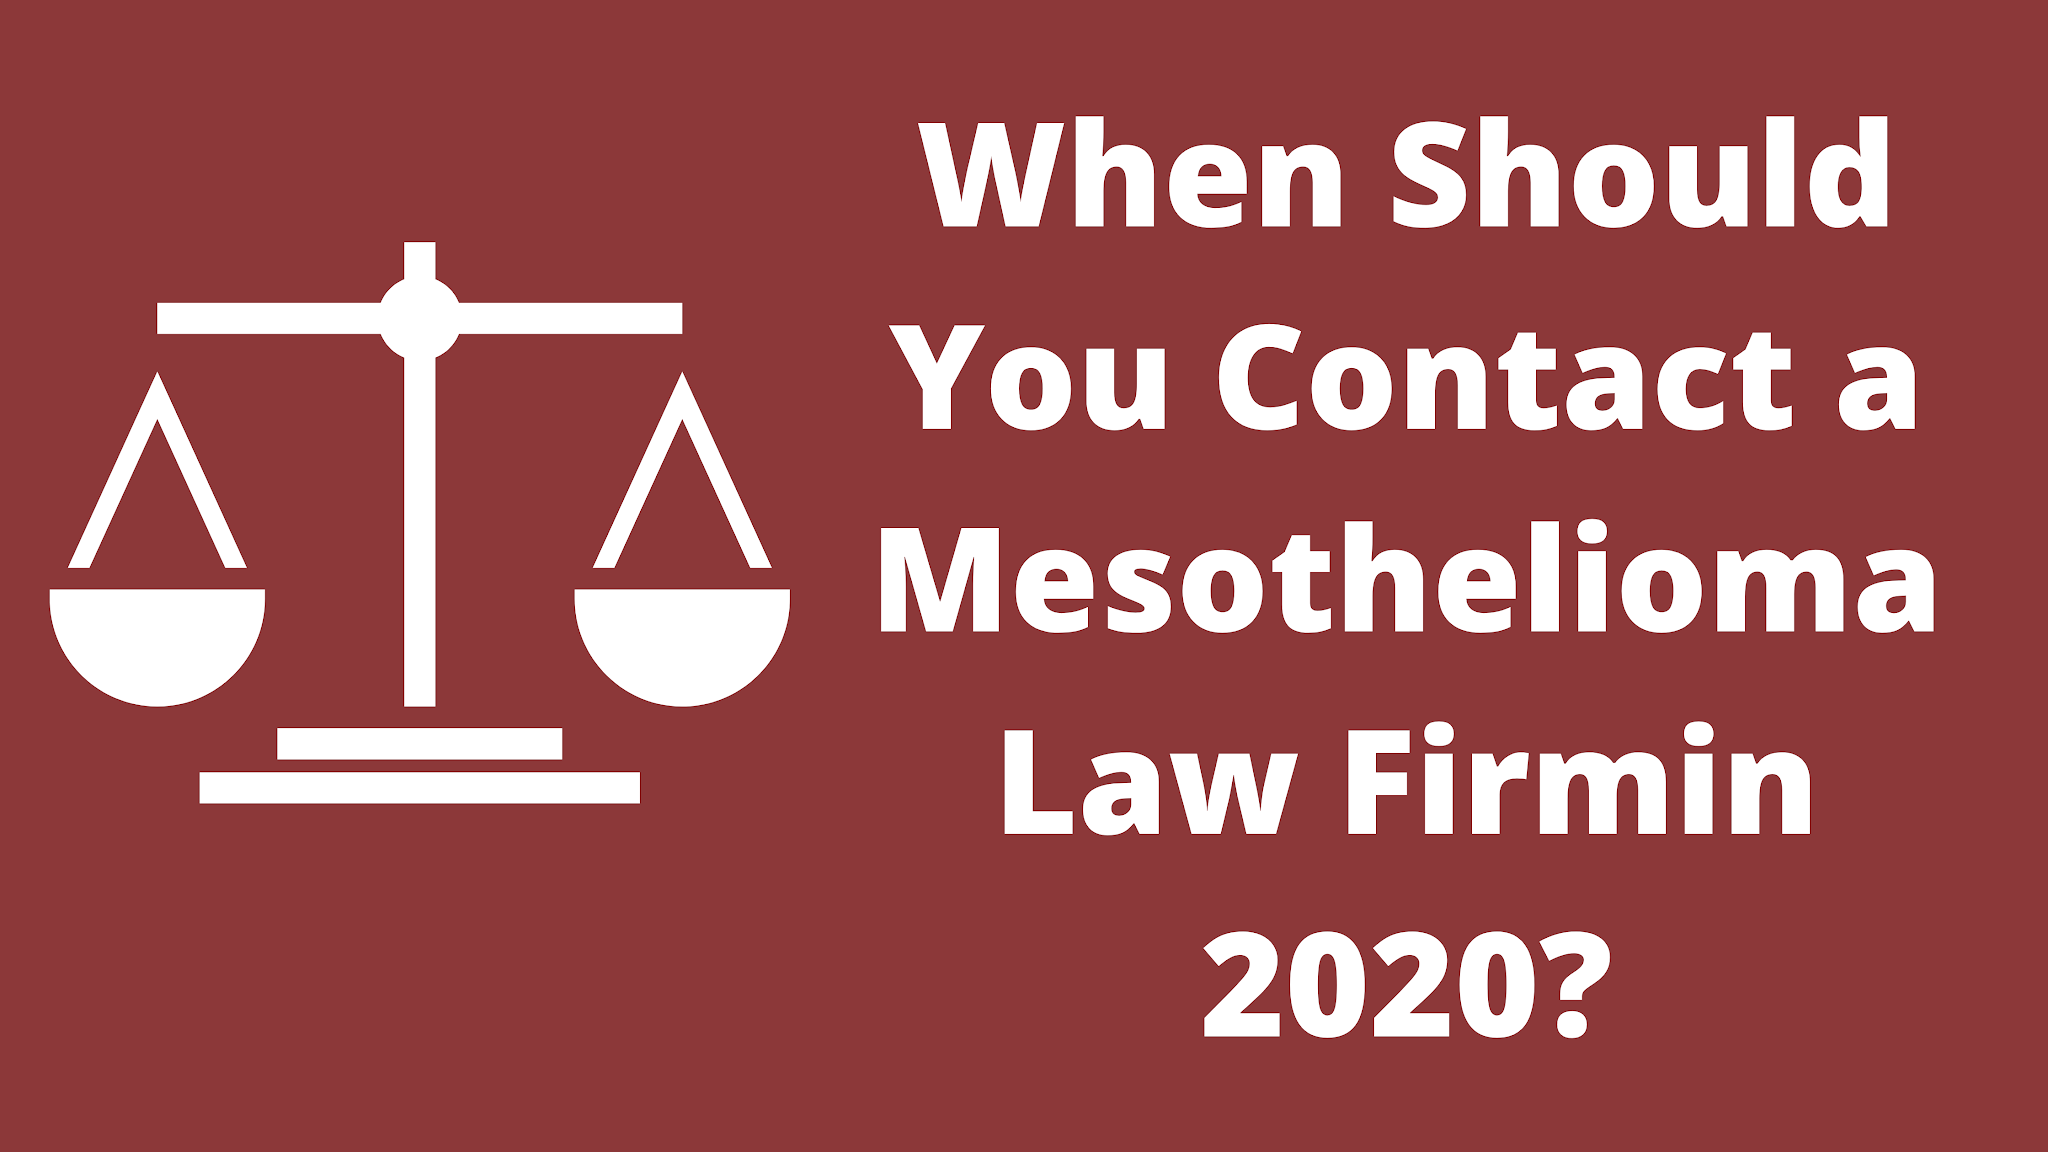 When You Contact A Mesothelioma Law Firmin 2020 Meniya Team Of Kjmeniya